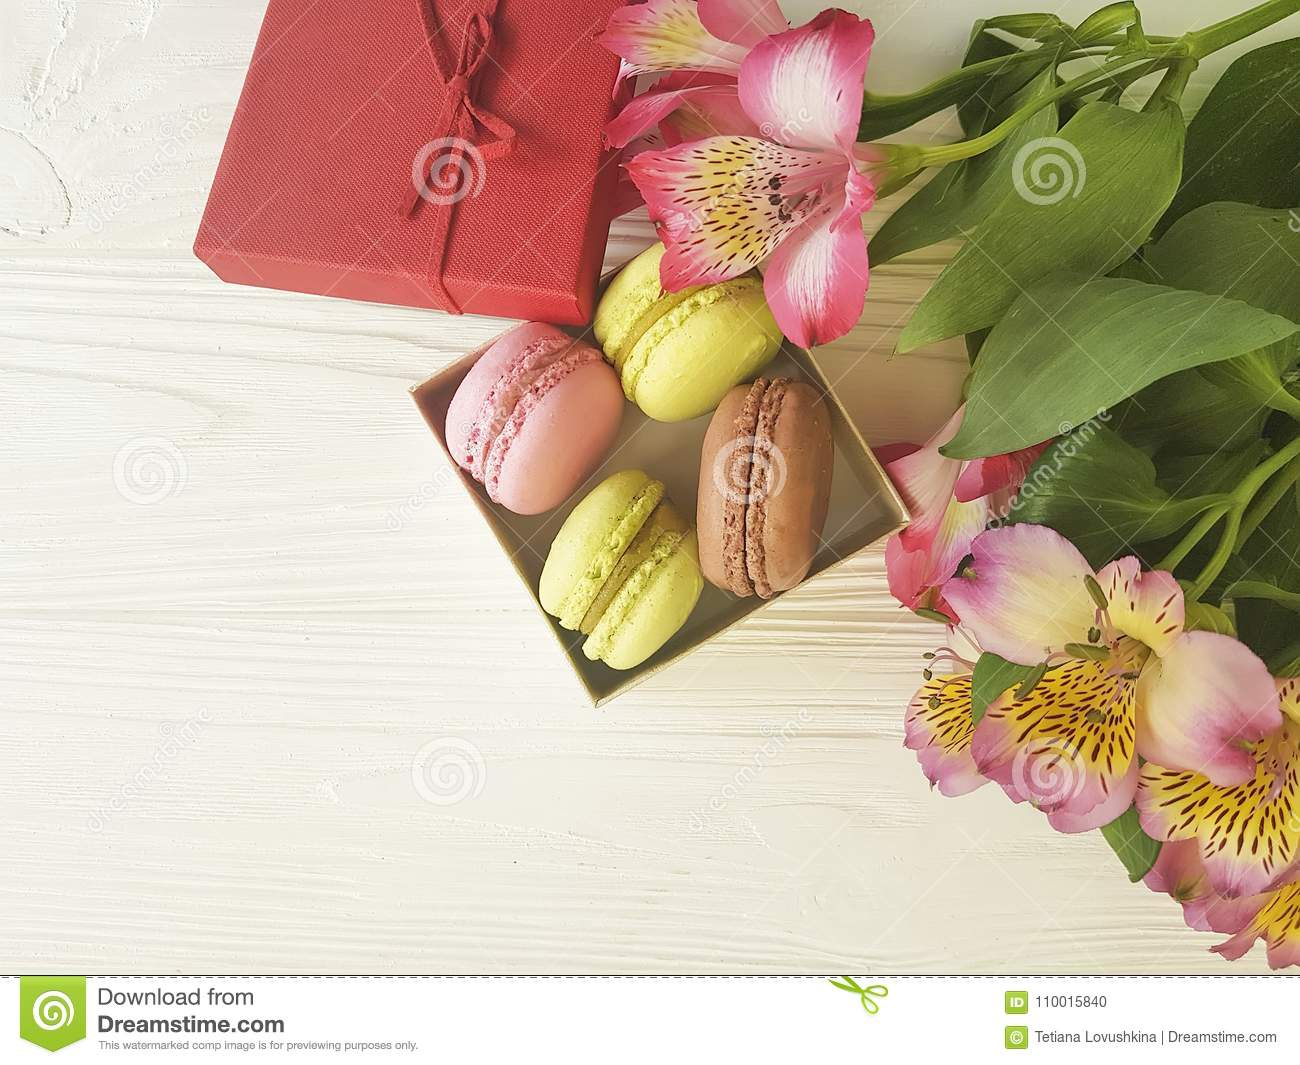 Macaron color in a box on bakery white wooden background macaron color in a box on bakery white wooden background alstroemeria flower mightylinksfo